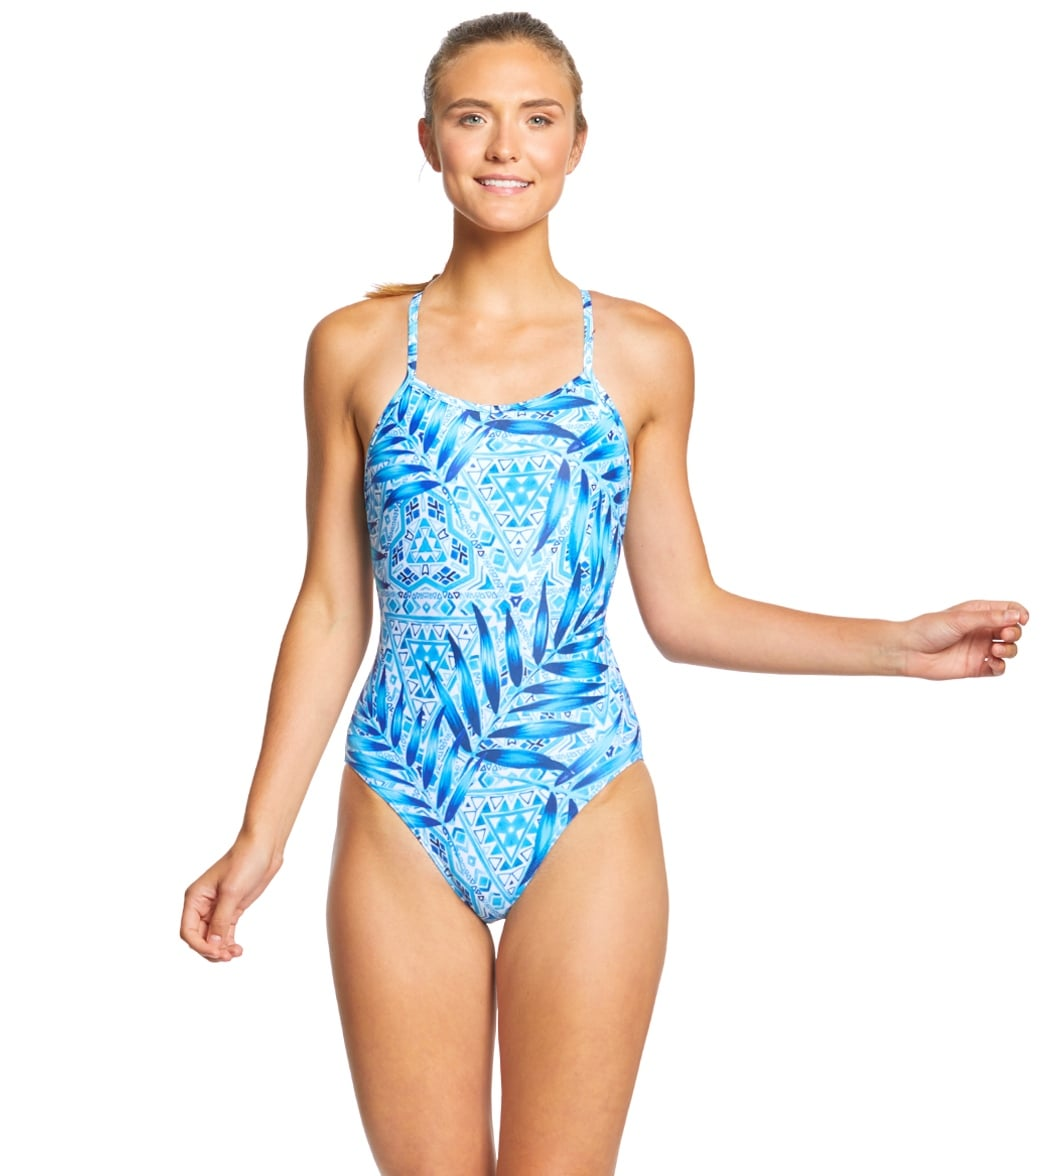 d2430698ac1 Amanzi Women s Santorini One Piece Swimsuit at SwimOutlet.com - Free ...